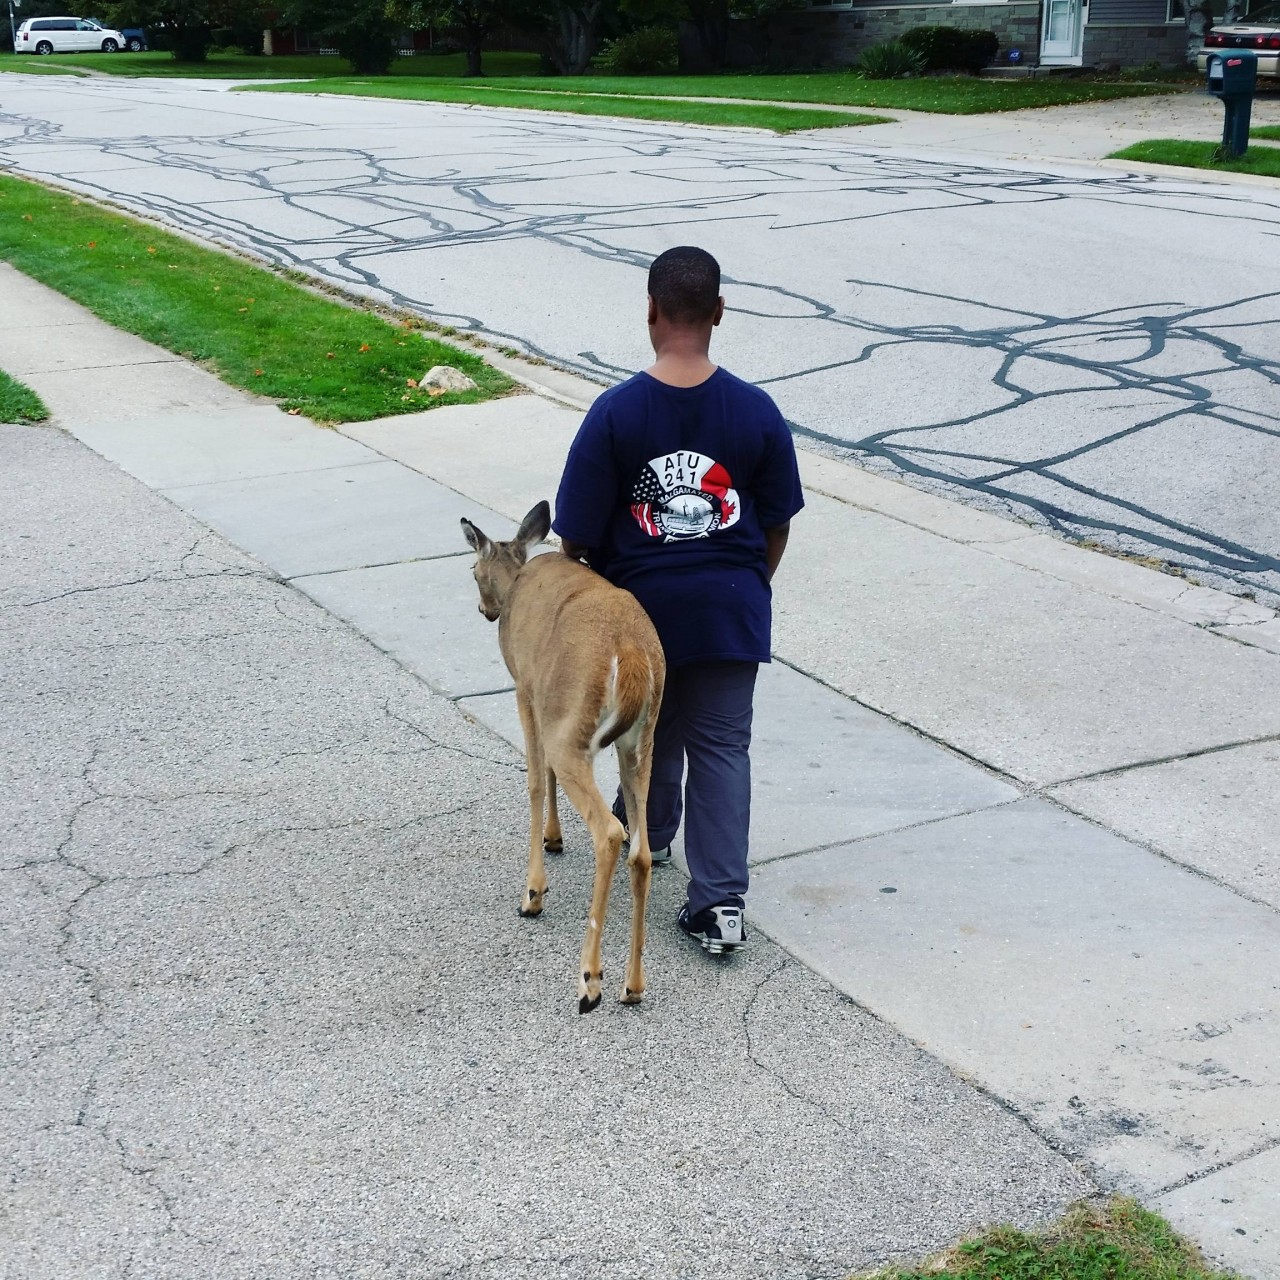 There is a blind deer in our neighborhood and this boy (10 yrs old) walks her from one grass patch to another every day before school to make sure she finds food.